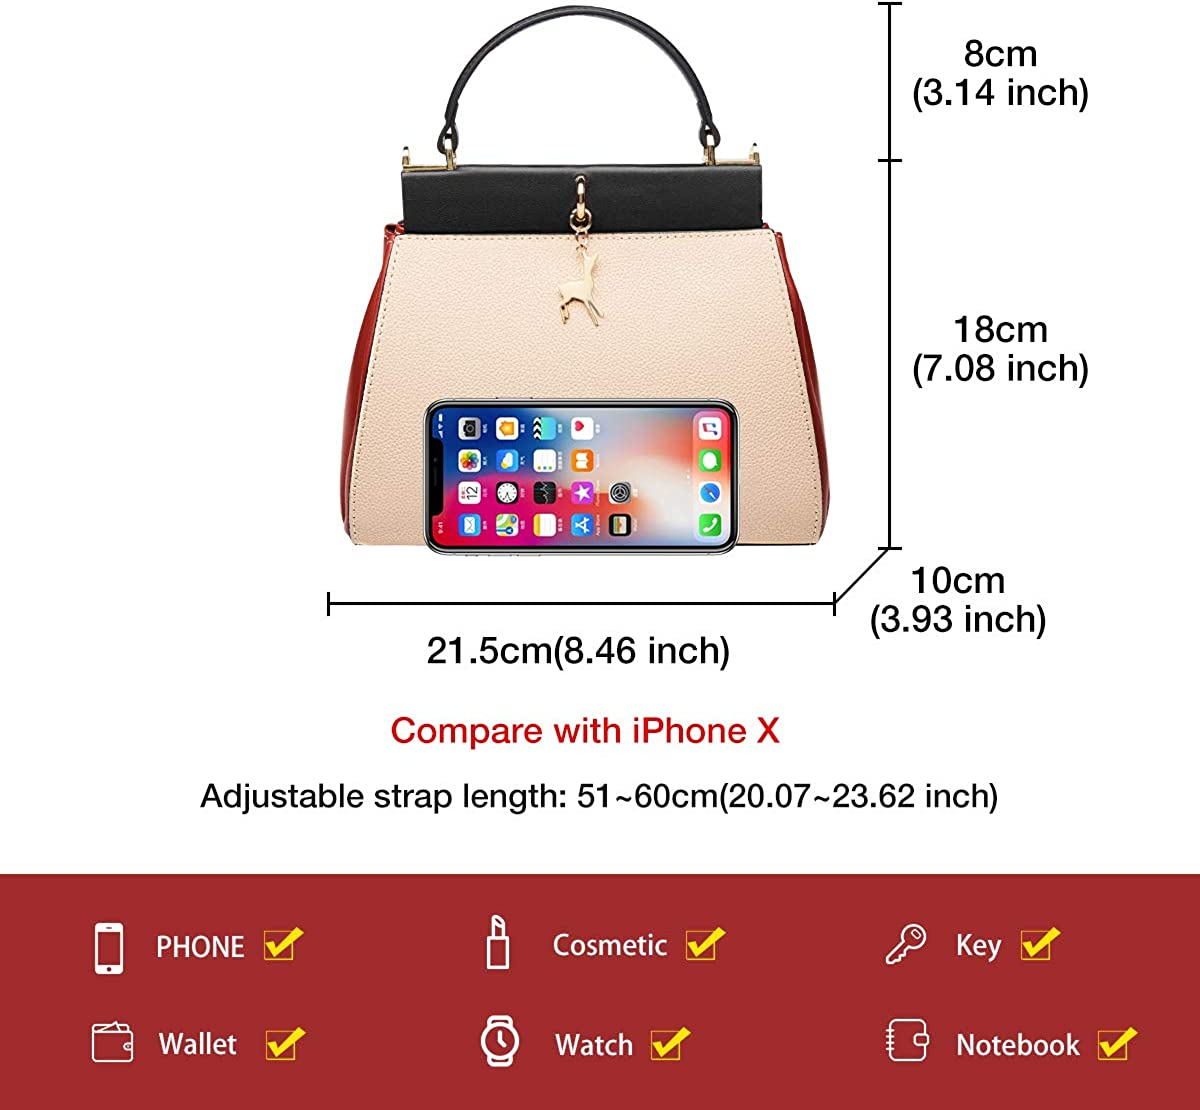 FOXER Leather Crossbody Bags for Women Apricot Cow Leather Medium Size Ladies Top-handle Bags with Adjustable Shoulder Strap Womens Fashion Satchel Handbags Girls Small Purses and Handbags